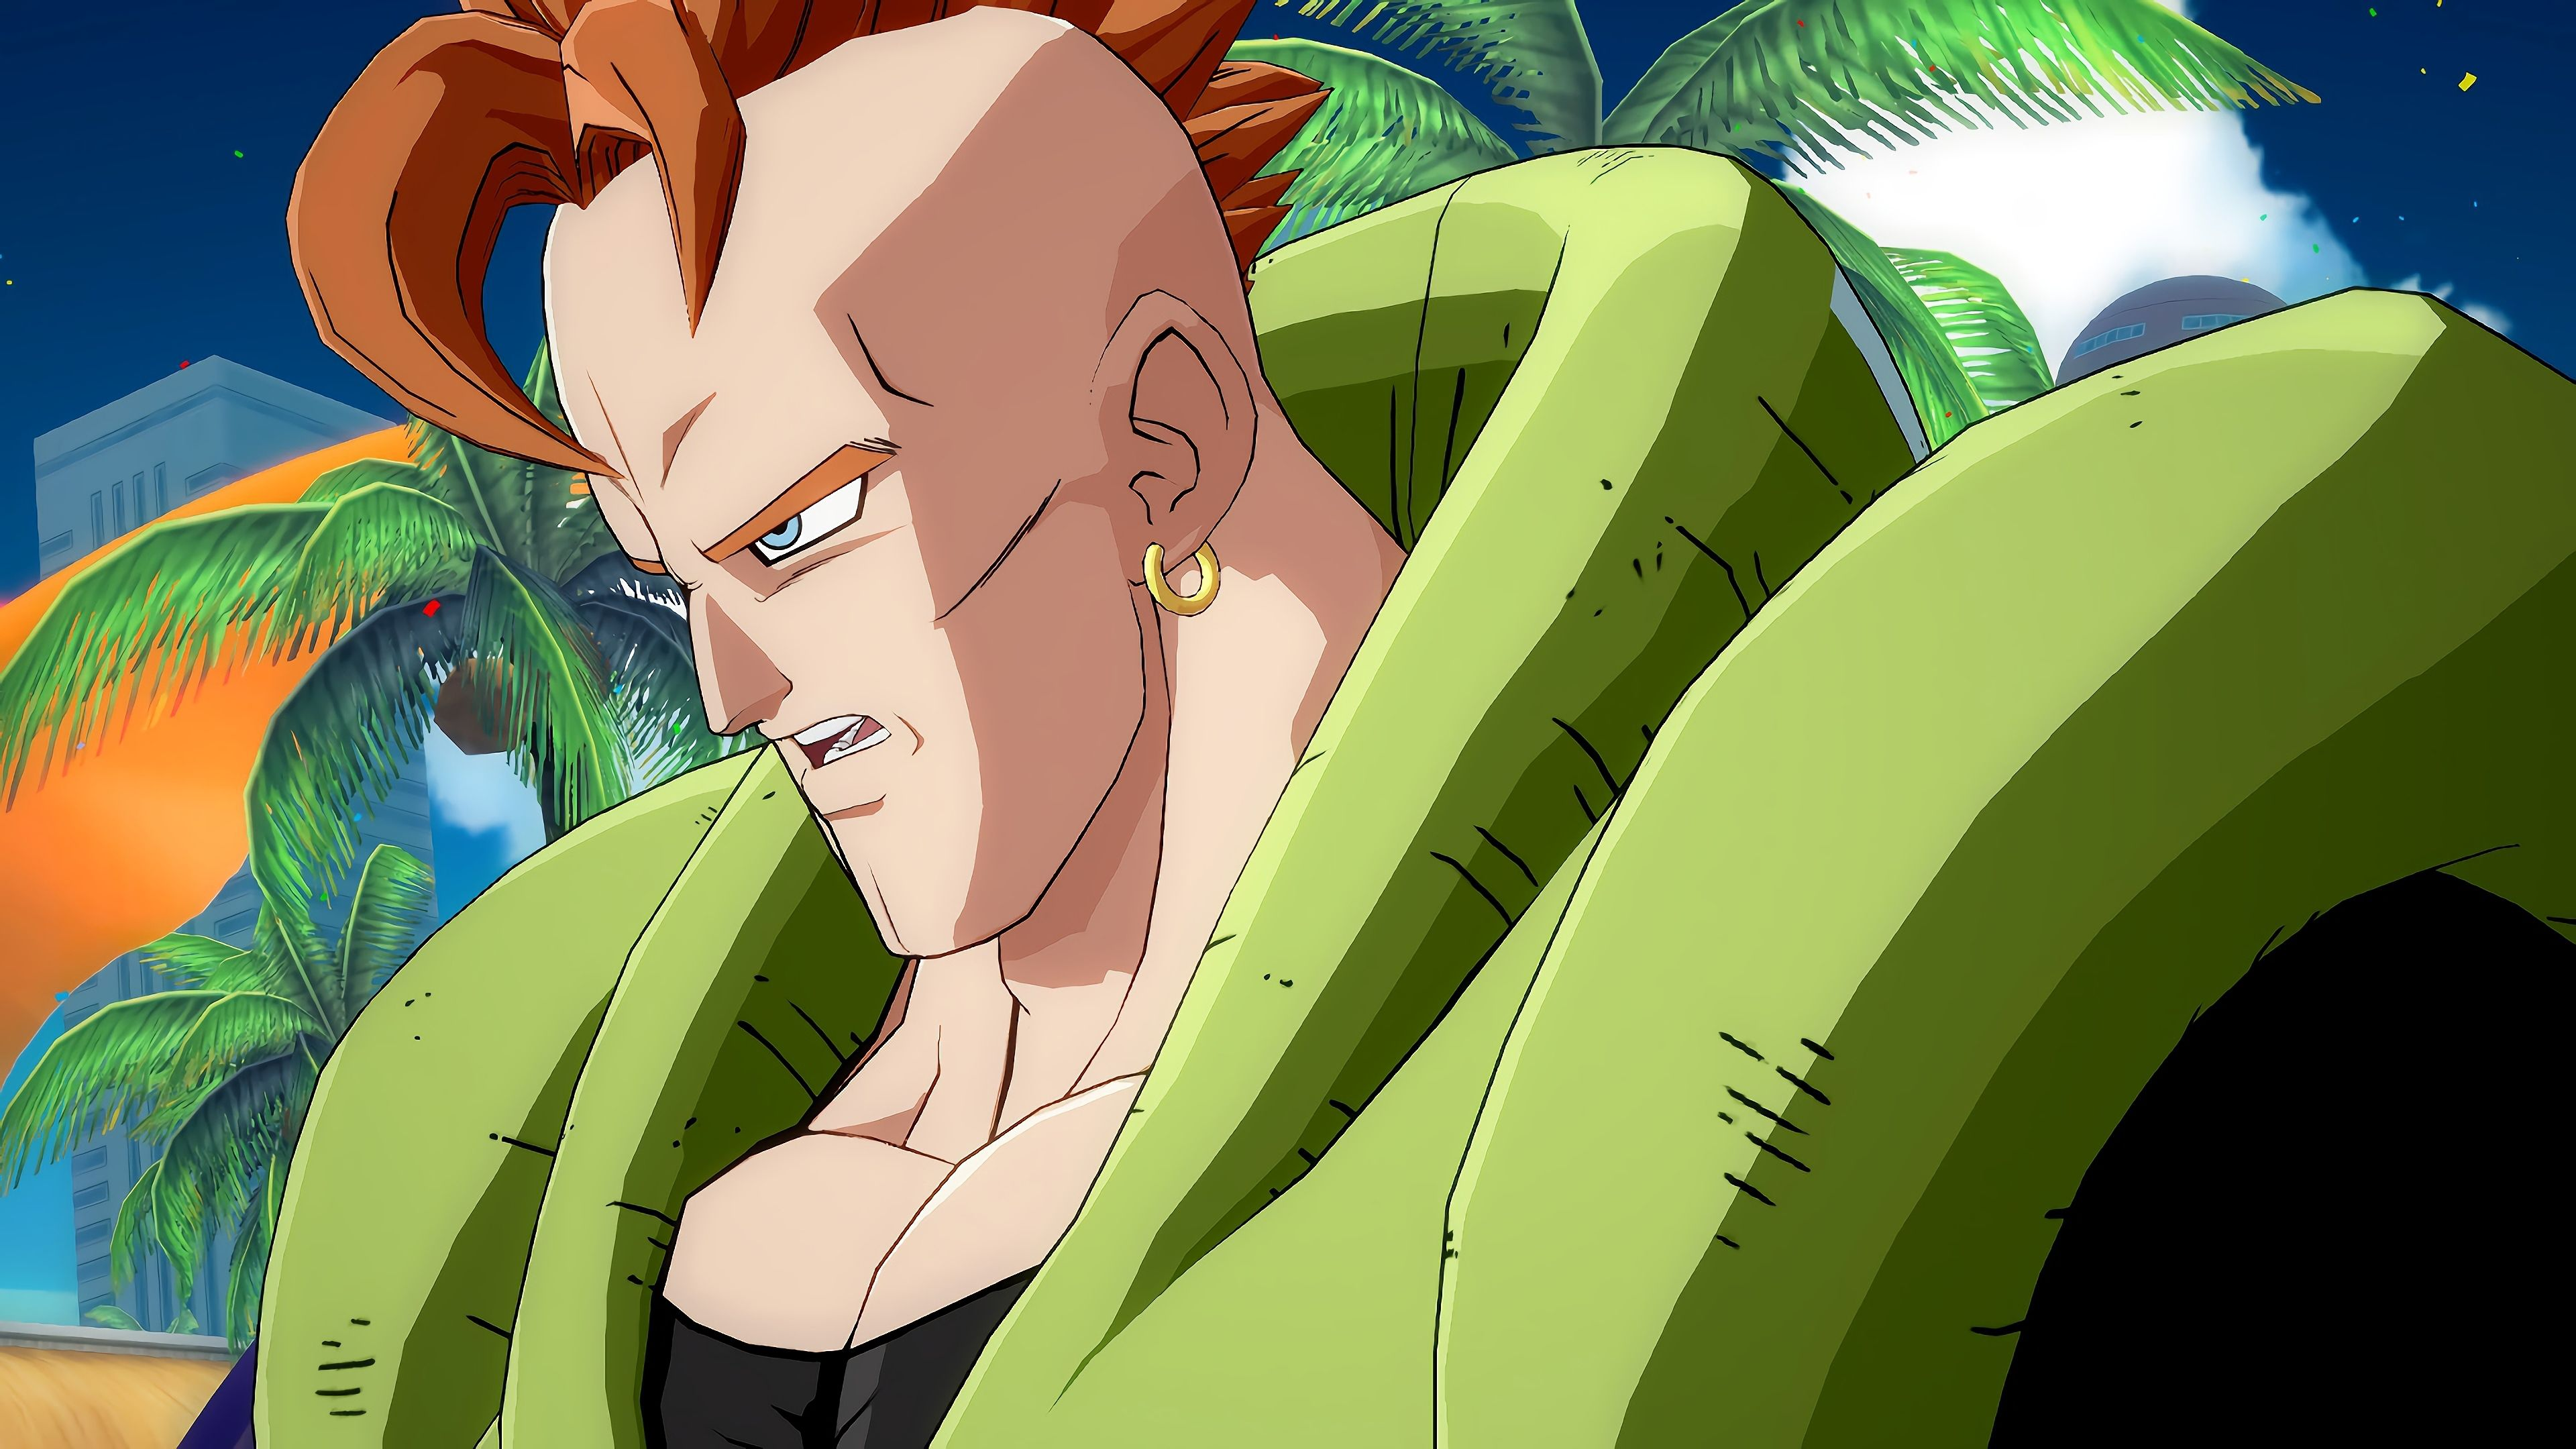 Android 16 Dragon Ball Z HD Wallpapers - Wallpaper Cave